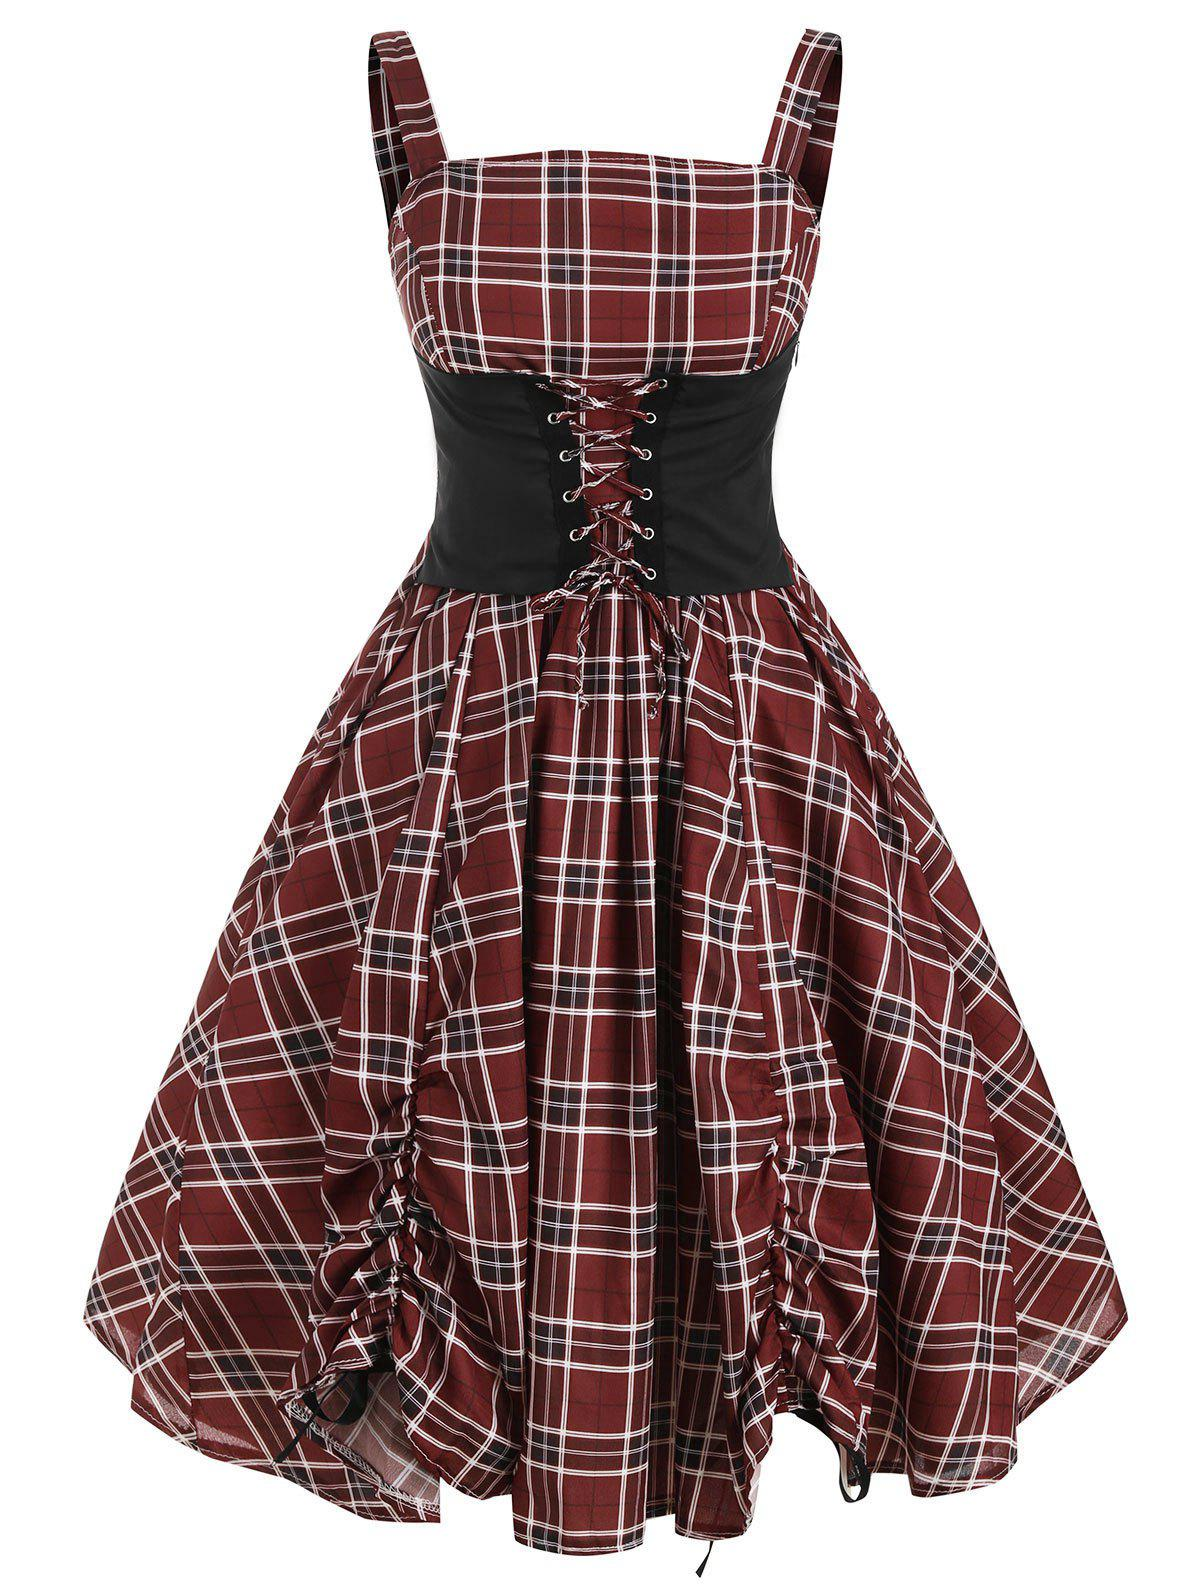 Fashion Lace Up Plaid Ruched Tied A Line Dress